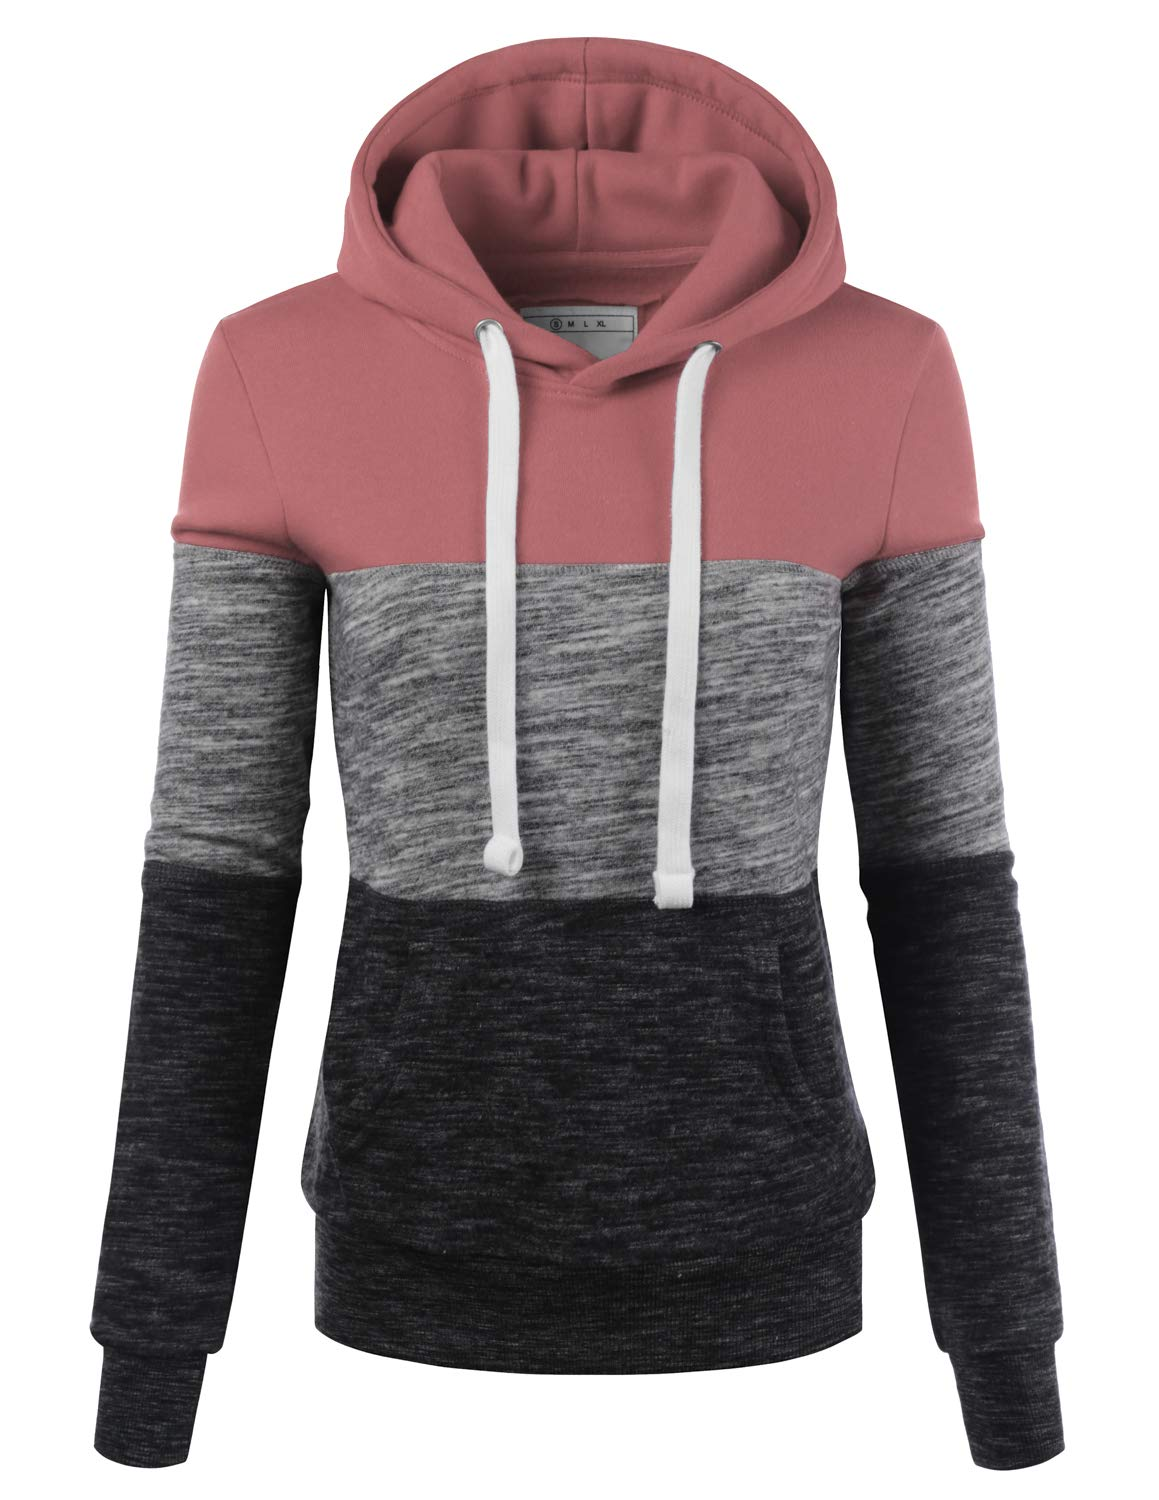 75e13a147cd9a Doublju Basic Lightweight Pullover Hoodie Sweatshirt for Women product image